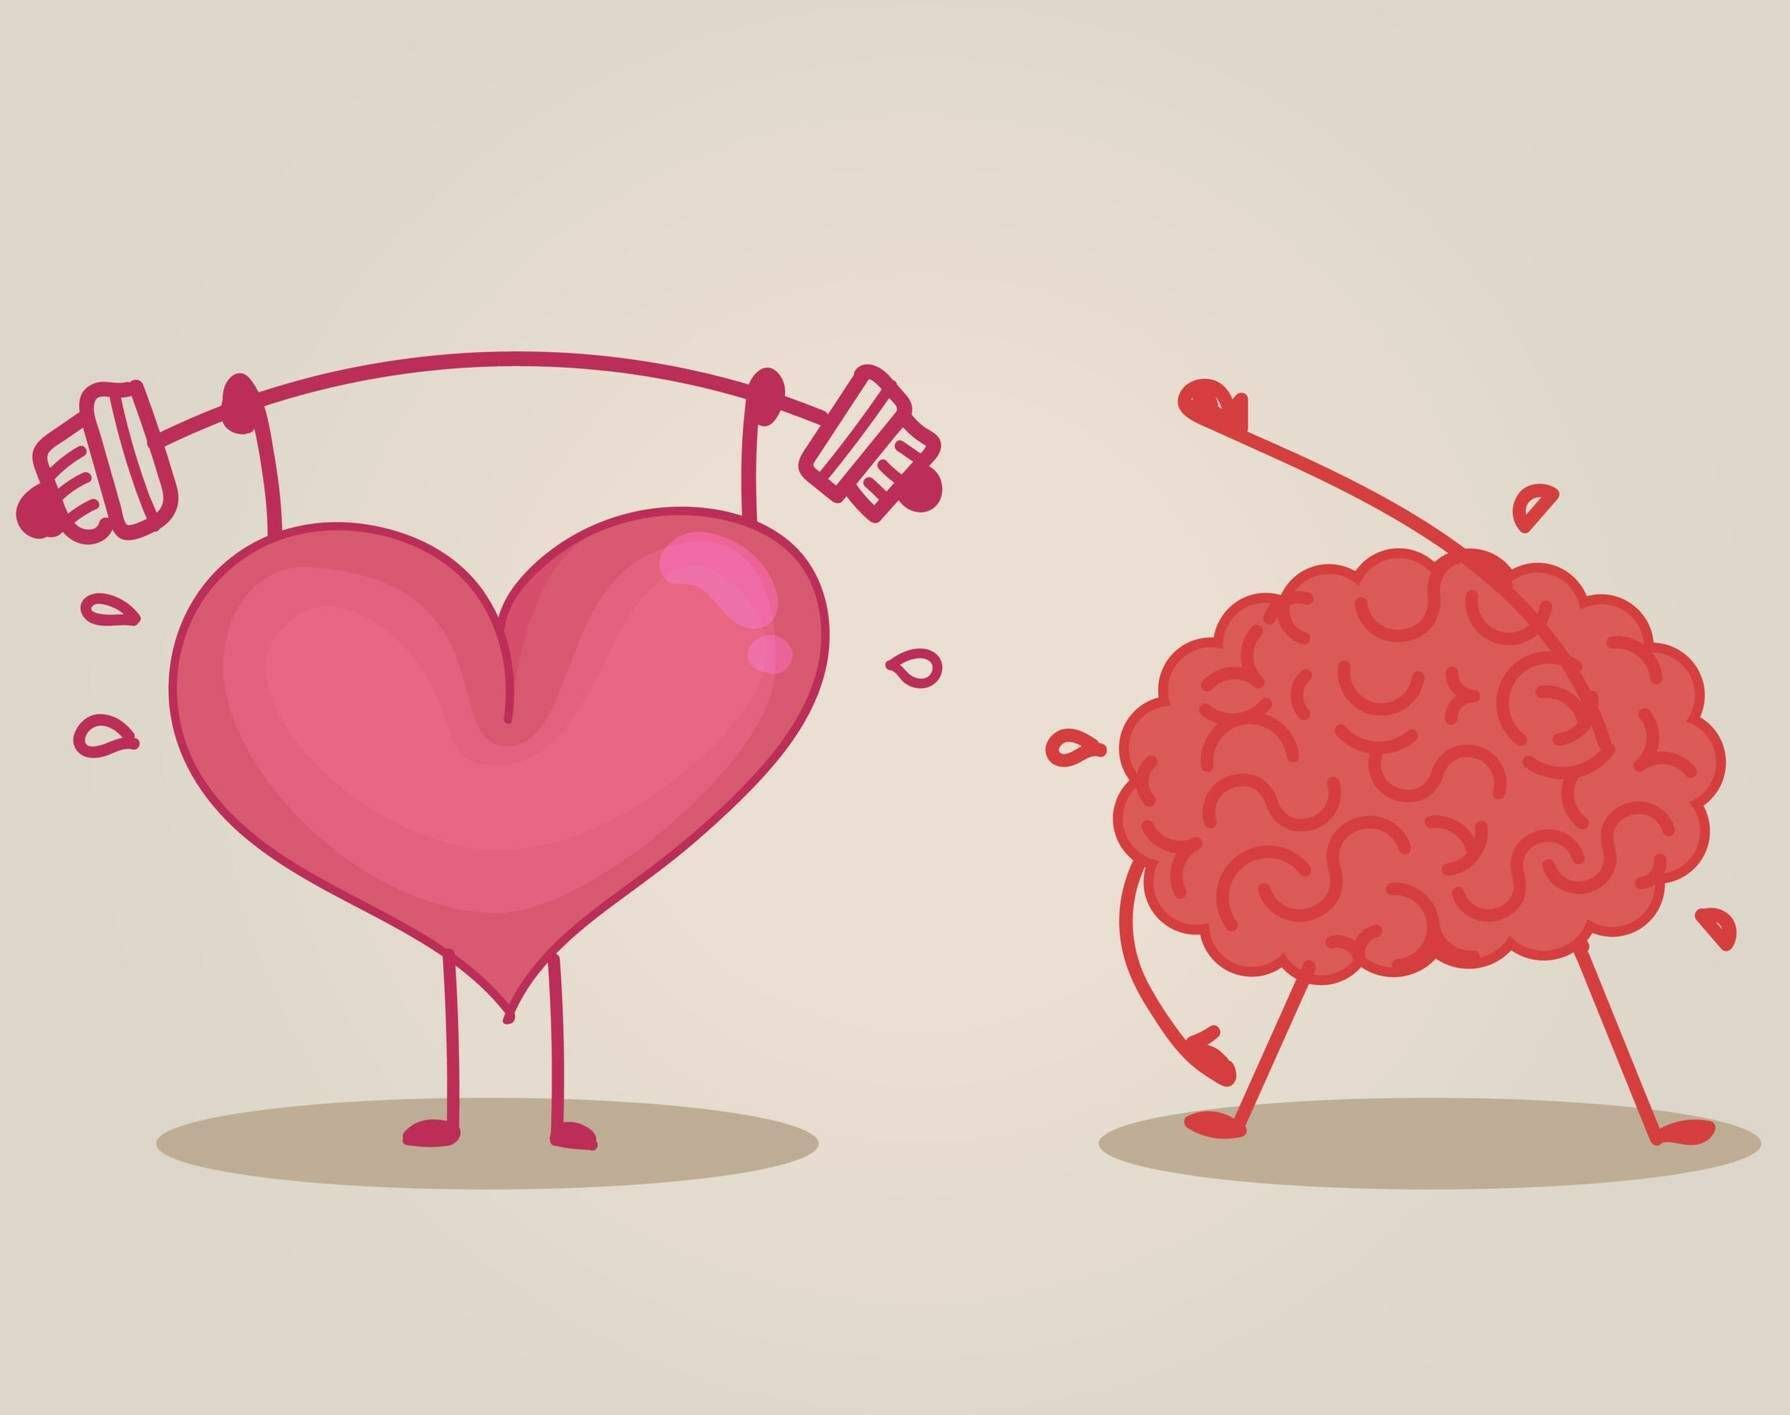 Illustration of heart and brain doing exercise and sweating. Rewire PBS Love Healthy Boundaries